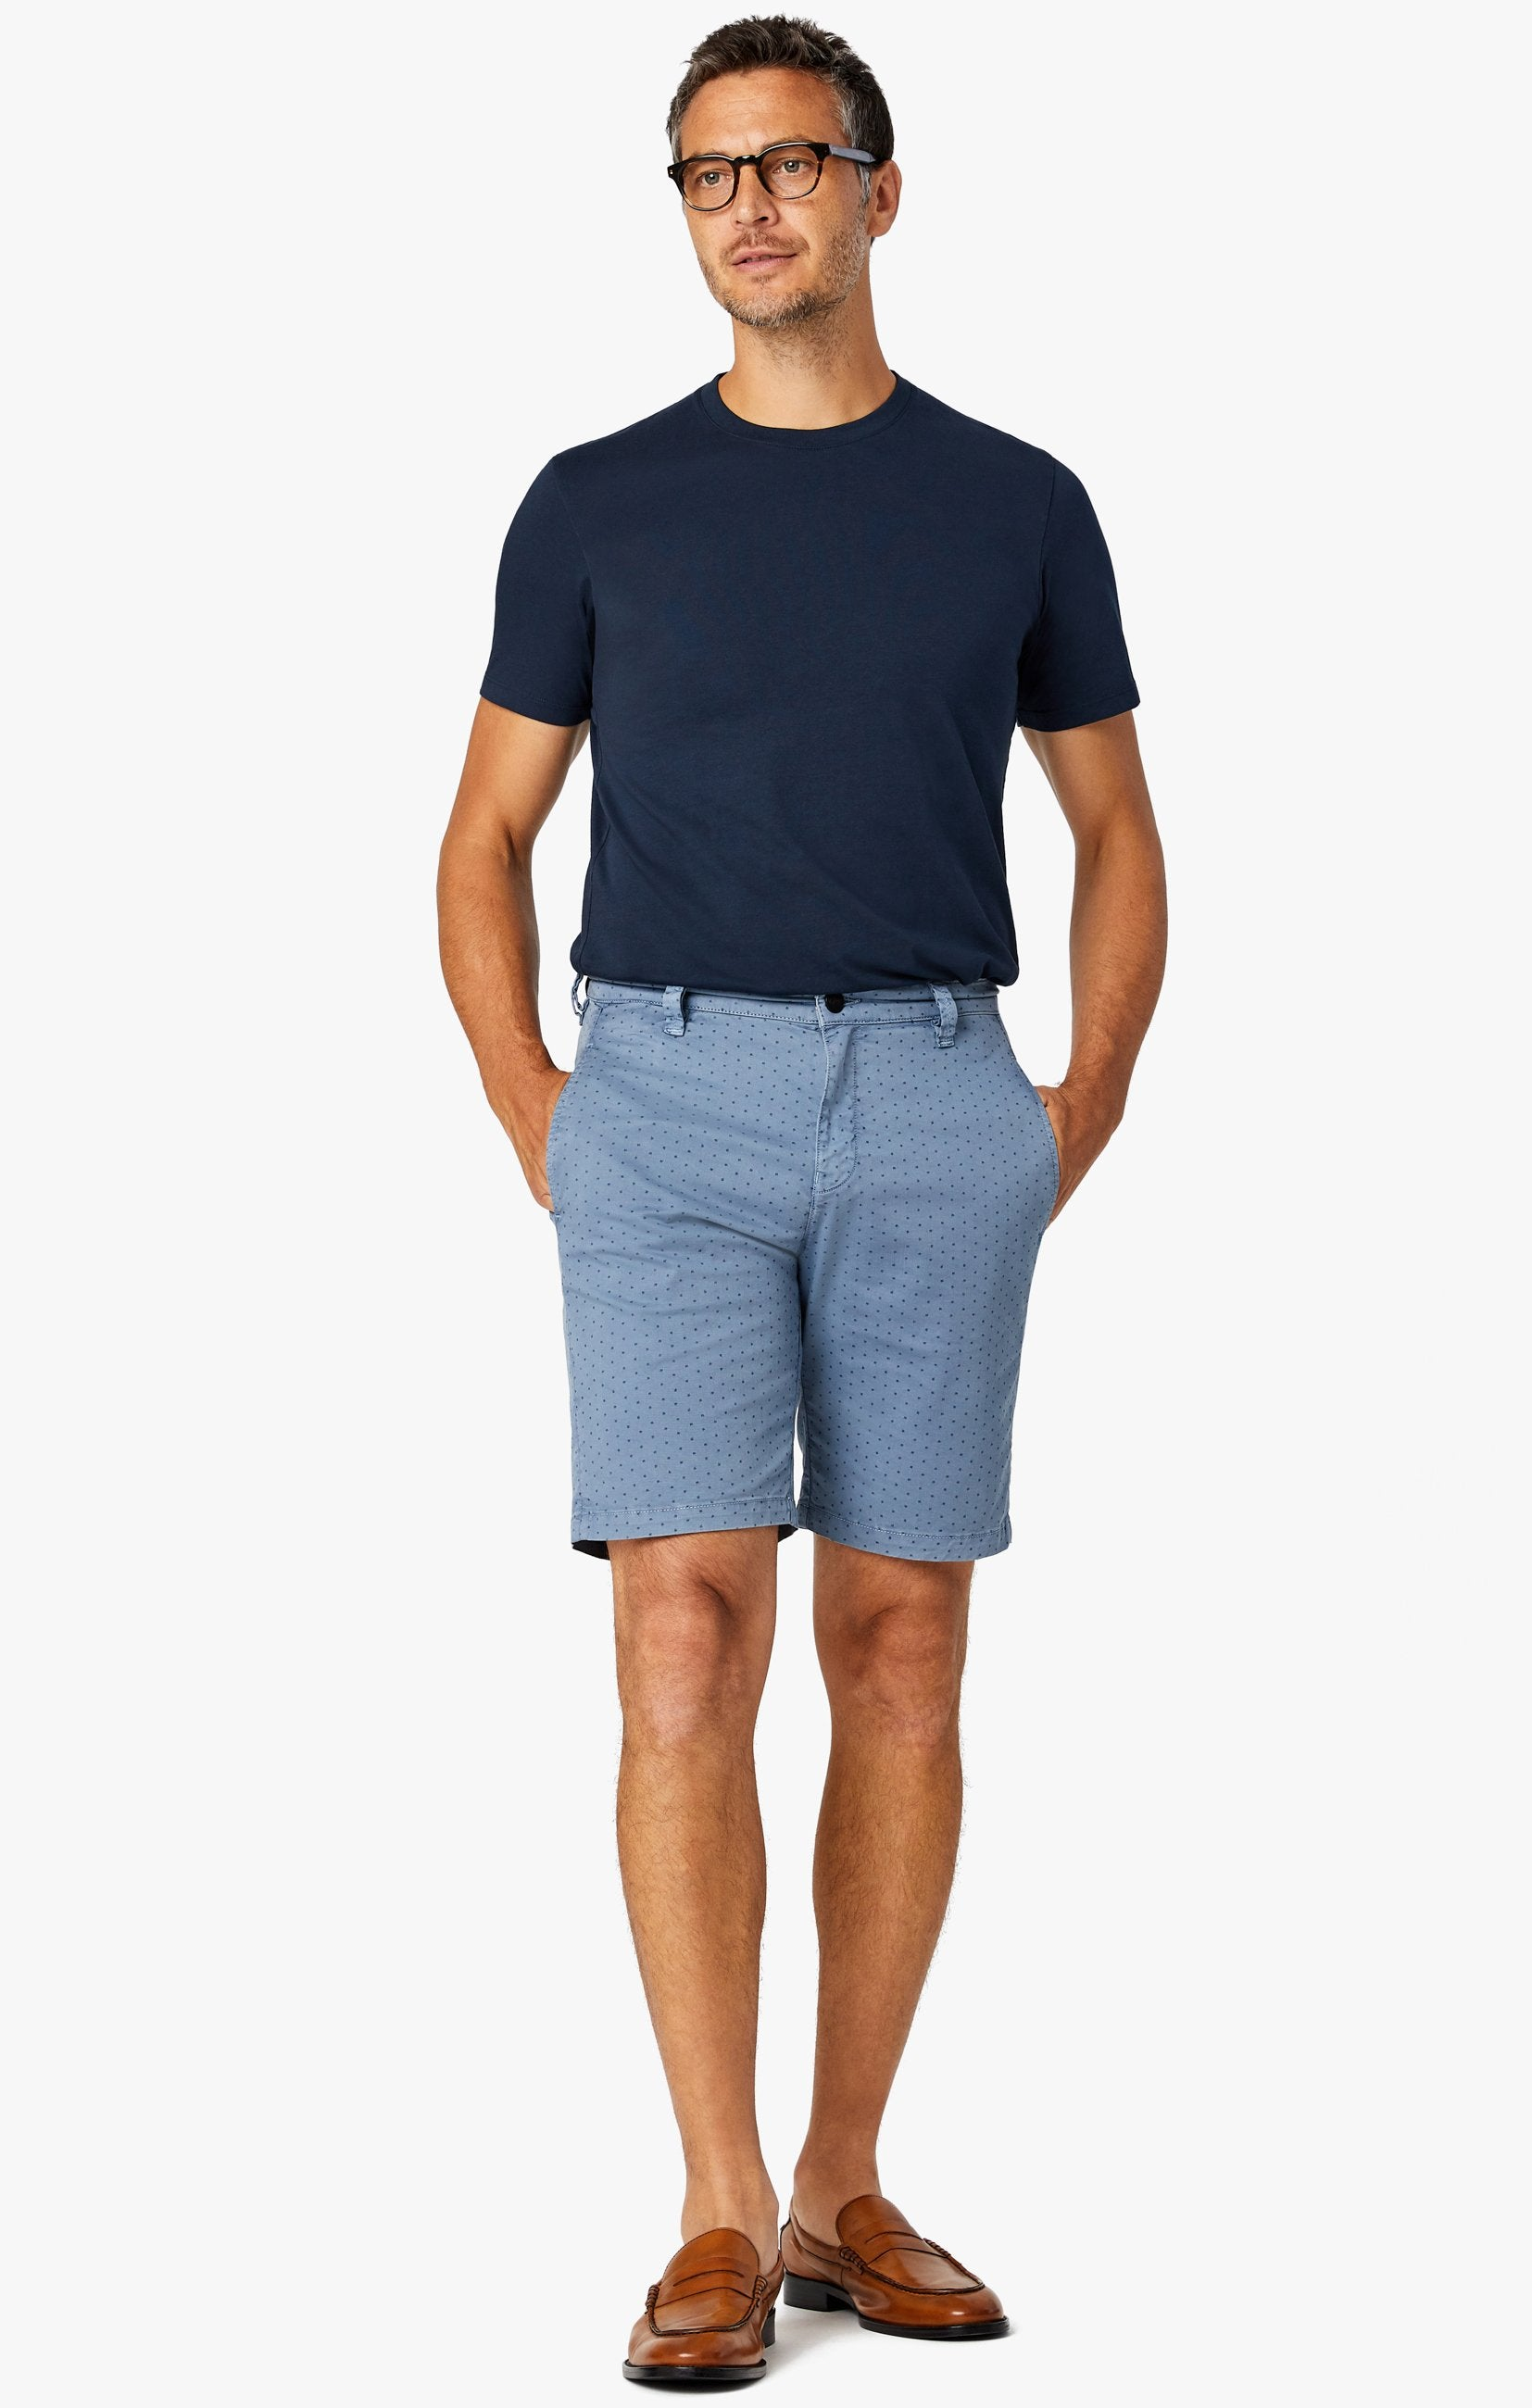 Arizona Slim Shorts in Blue Fancy Image 7